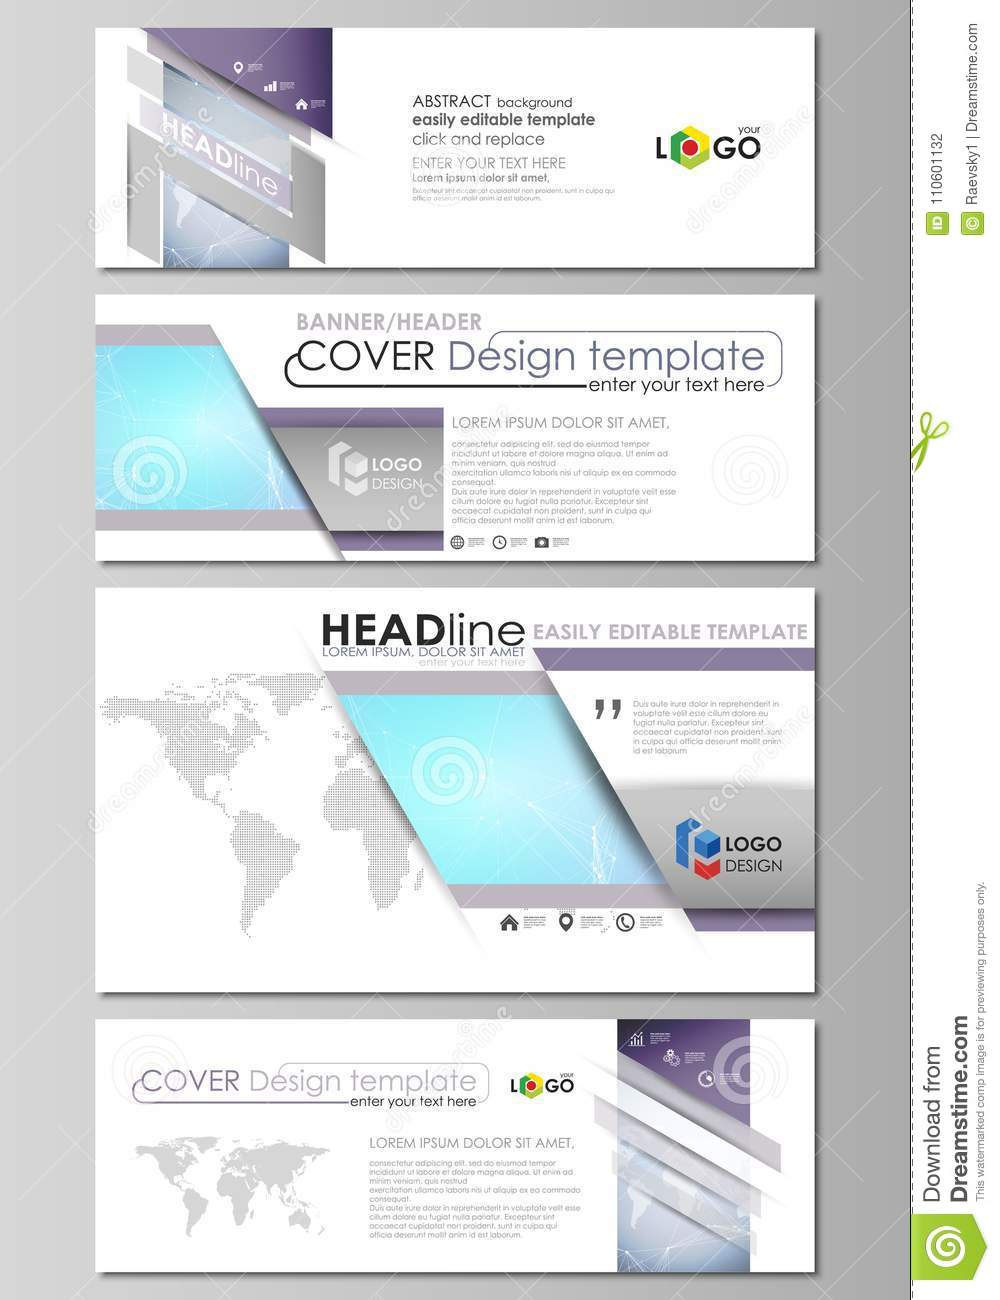 The minimalistic vector illustration of editable layout of social media, email headers, banner design templates in